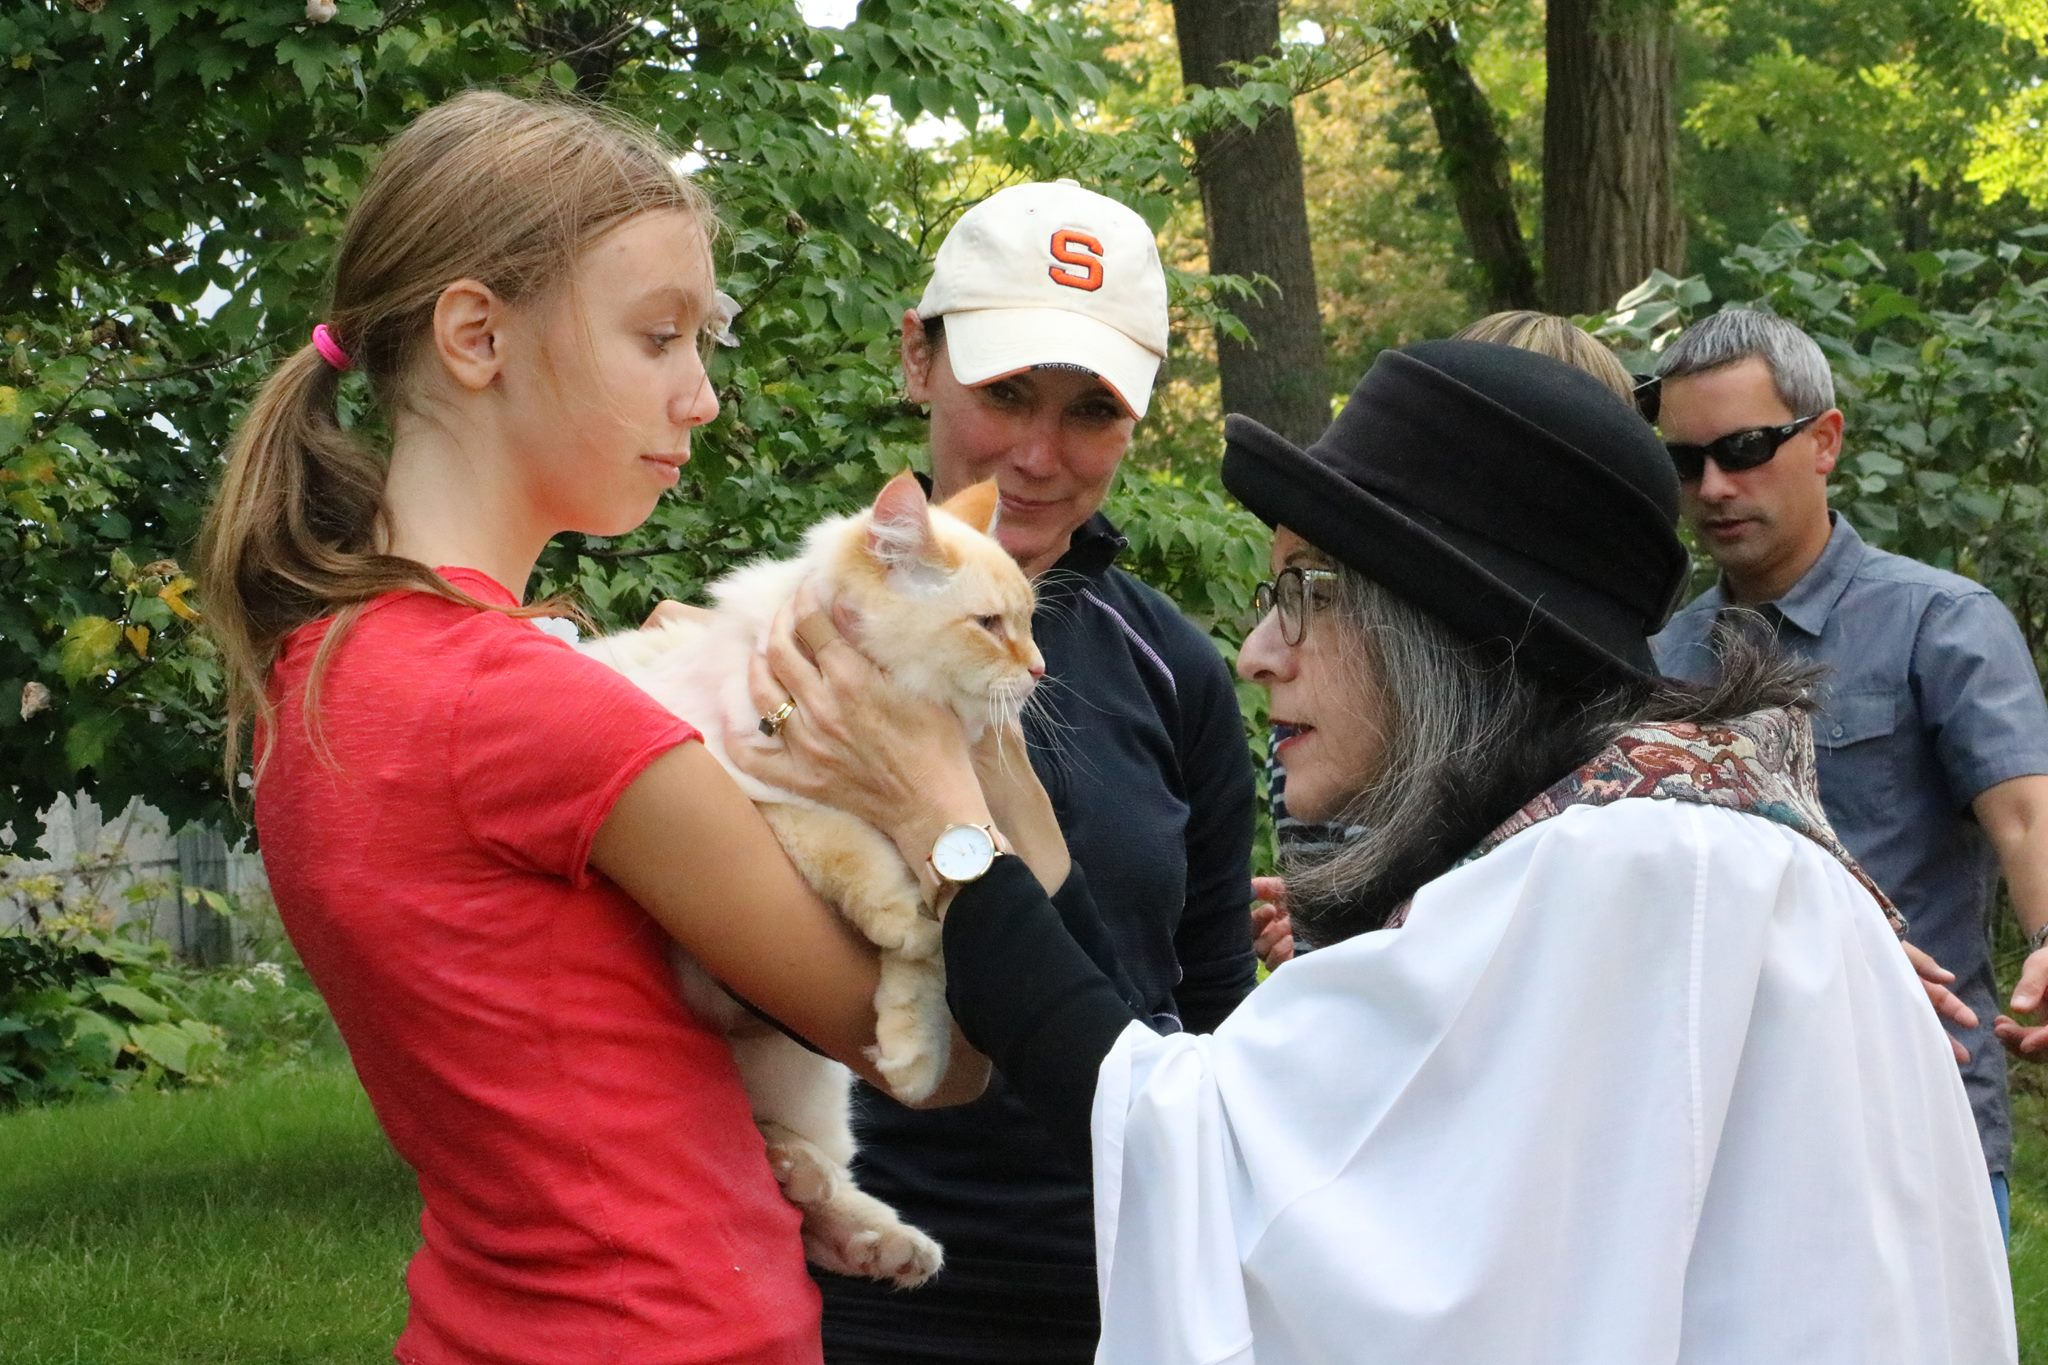 Mother Renee blesses a kitty at Trinity Episcopal Church in Fayetteville.